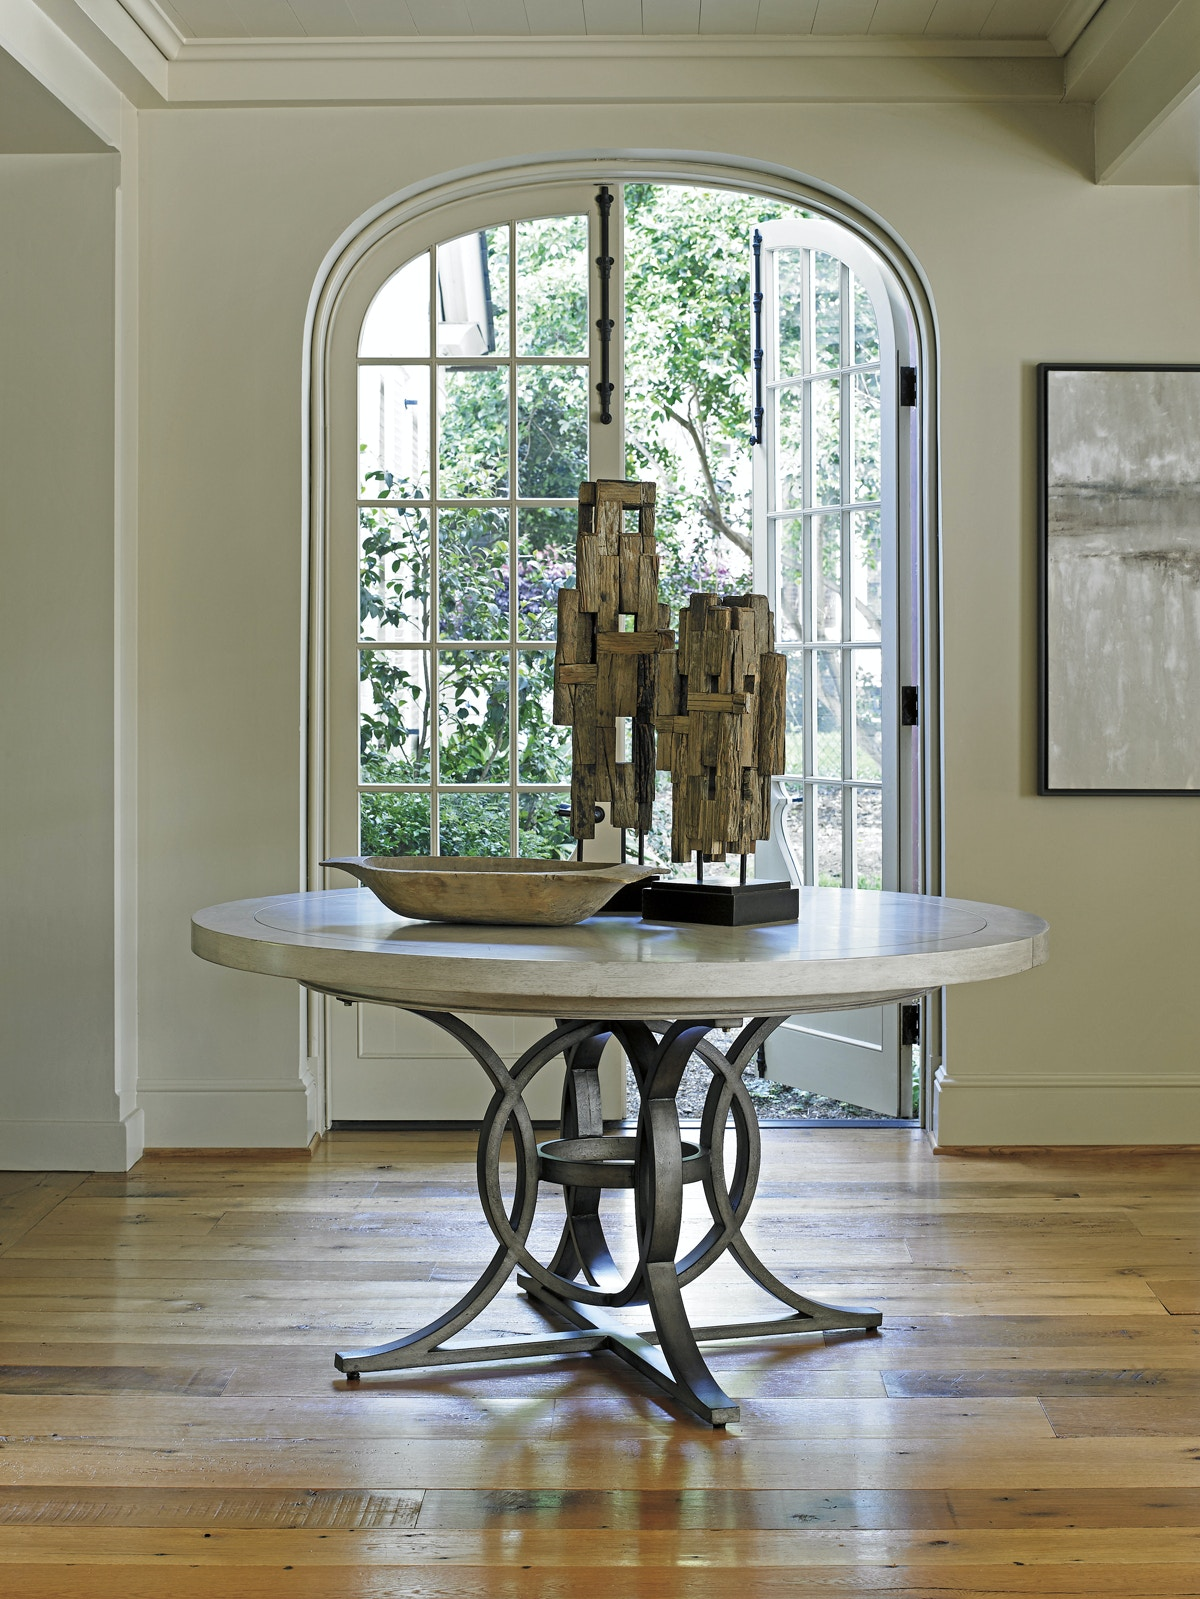 Lexington Furniture Dining Room Oyster Bay Calerton Round